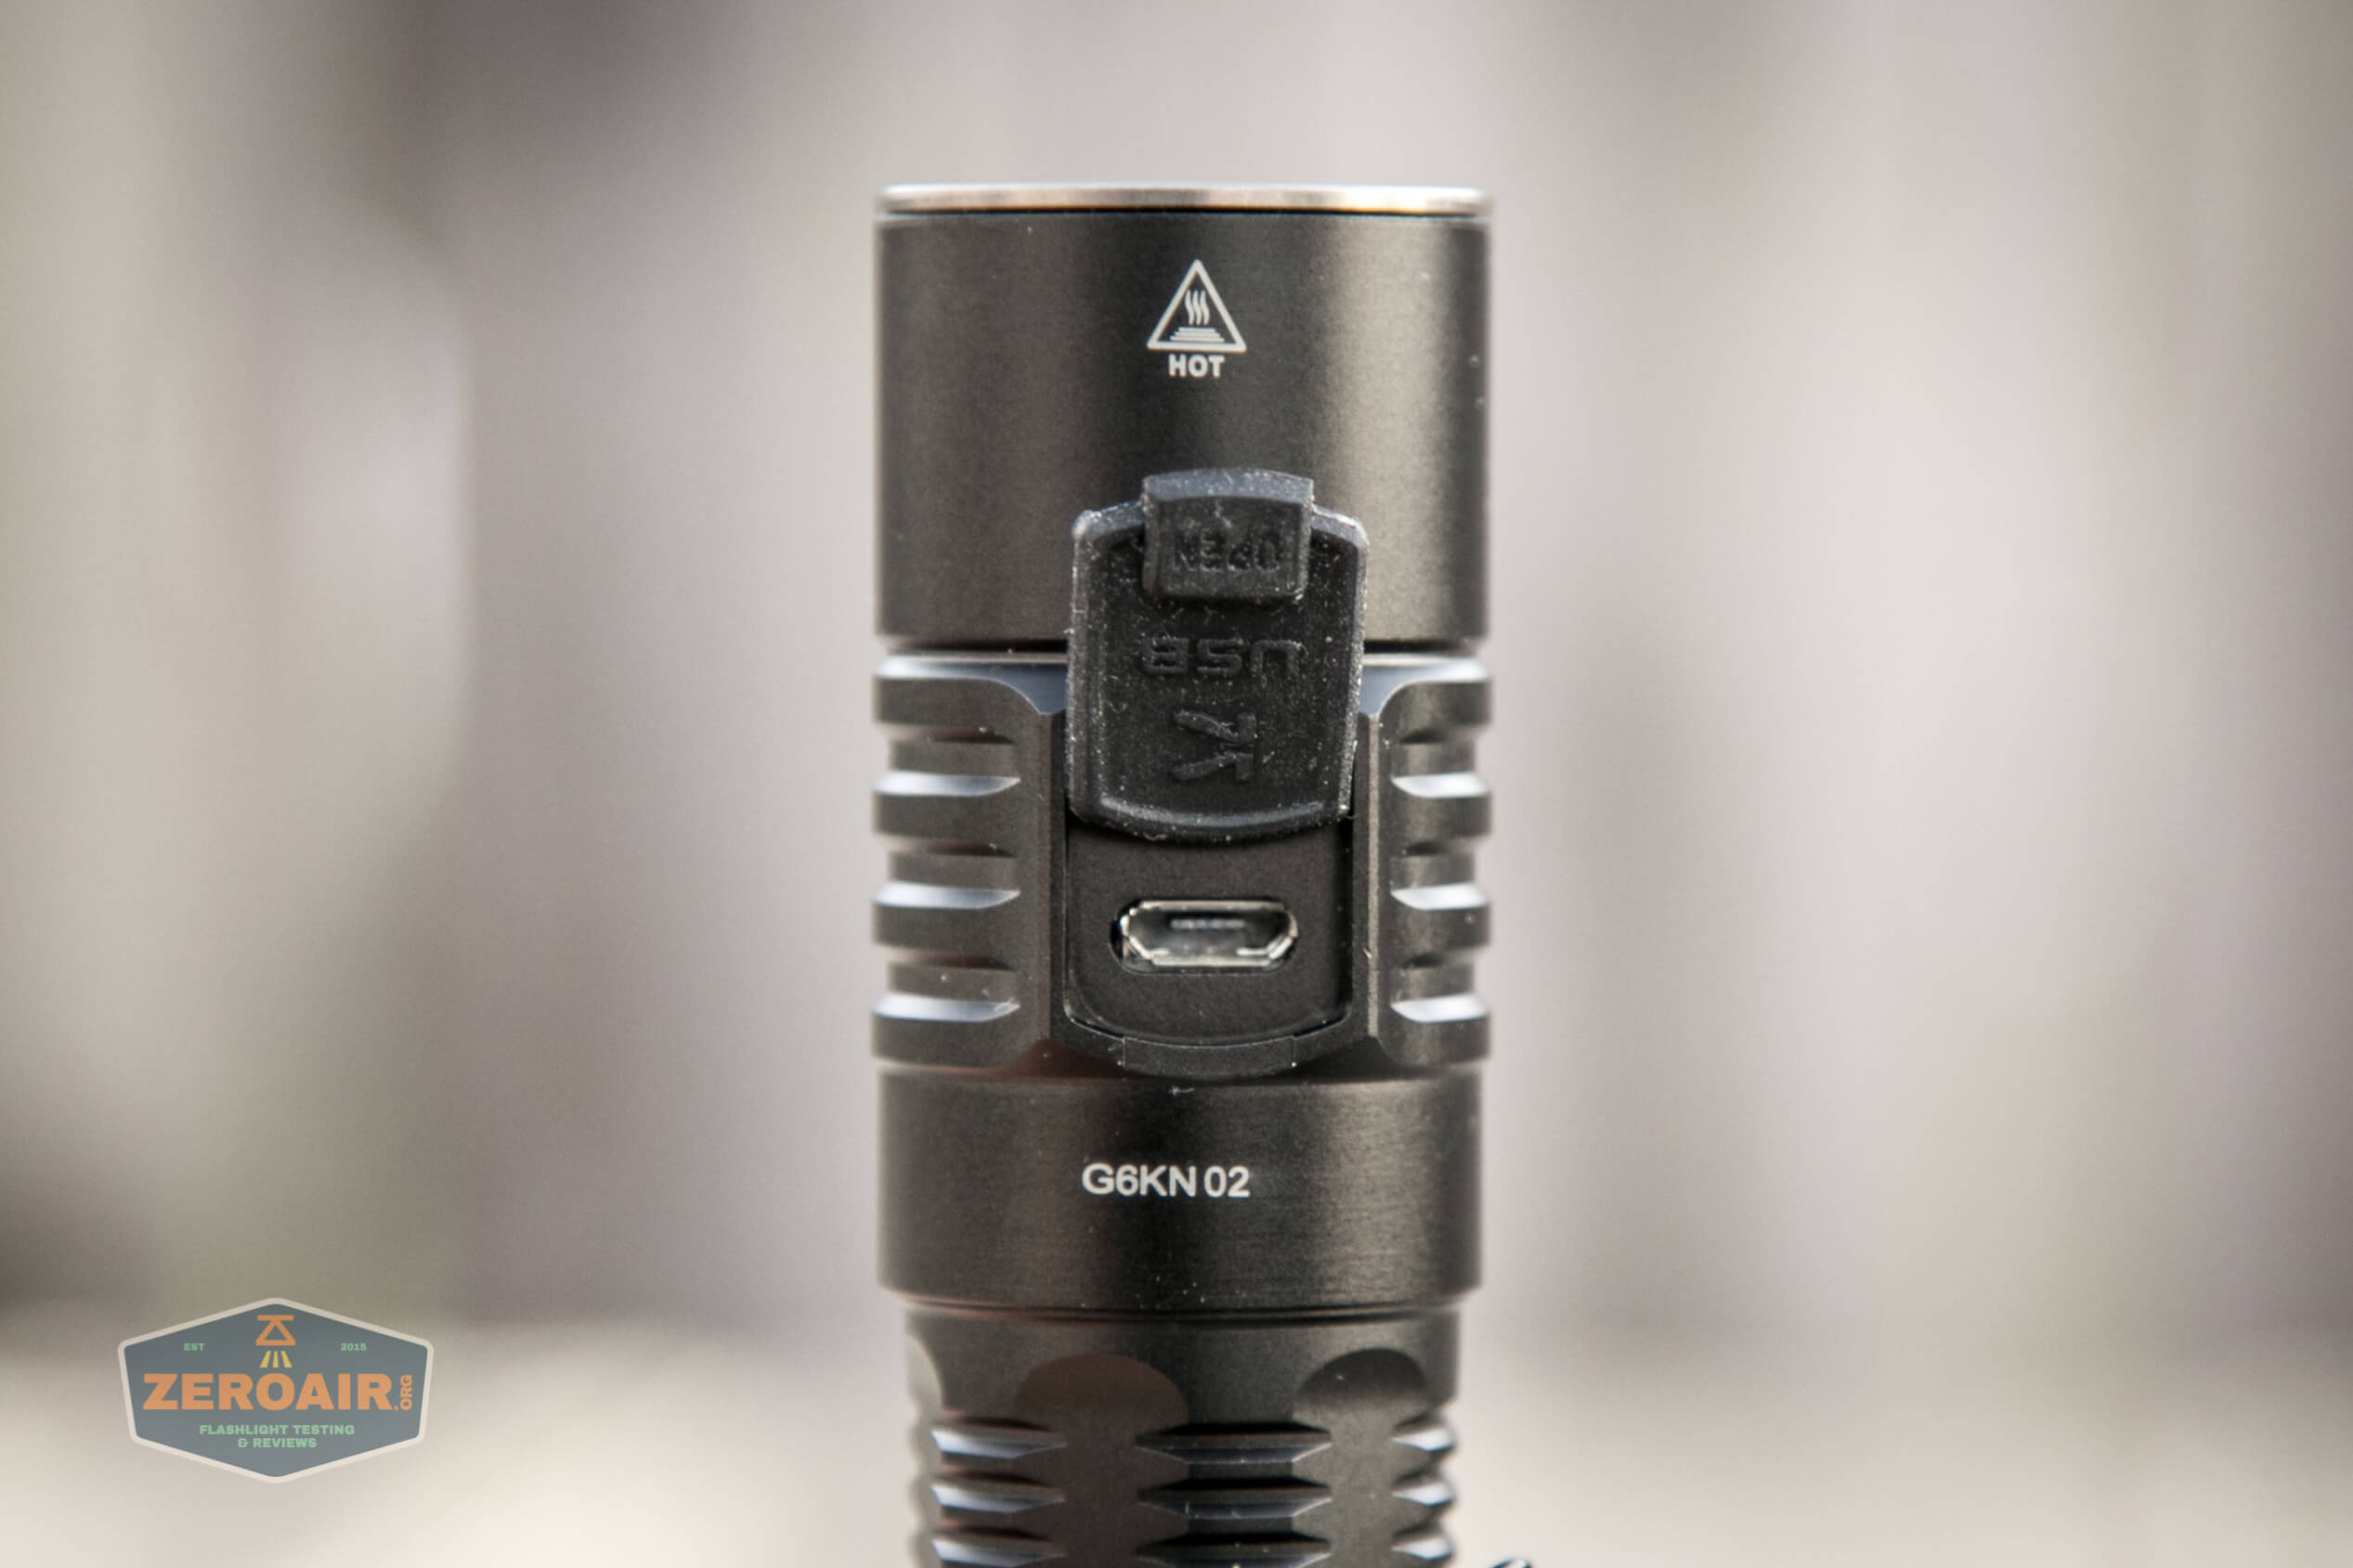 klarus g25 21700 cree xhp70.2 flashlight charge port cover open